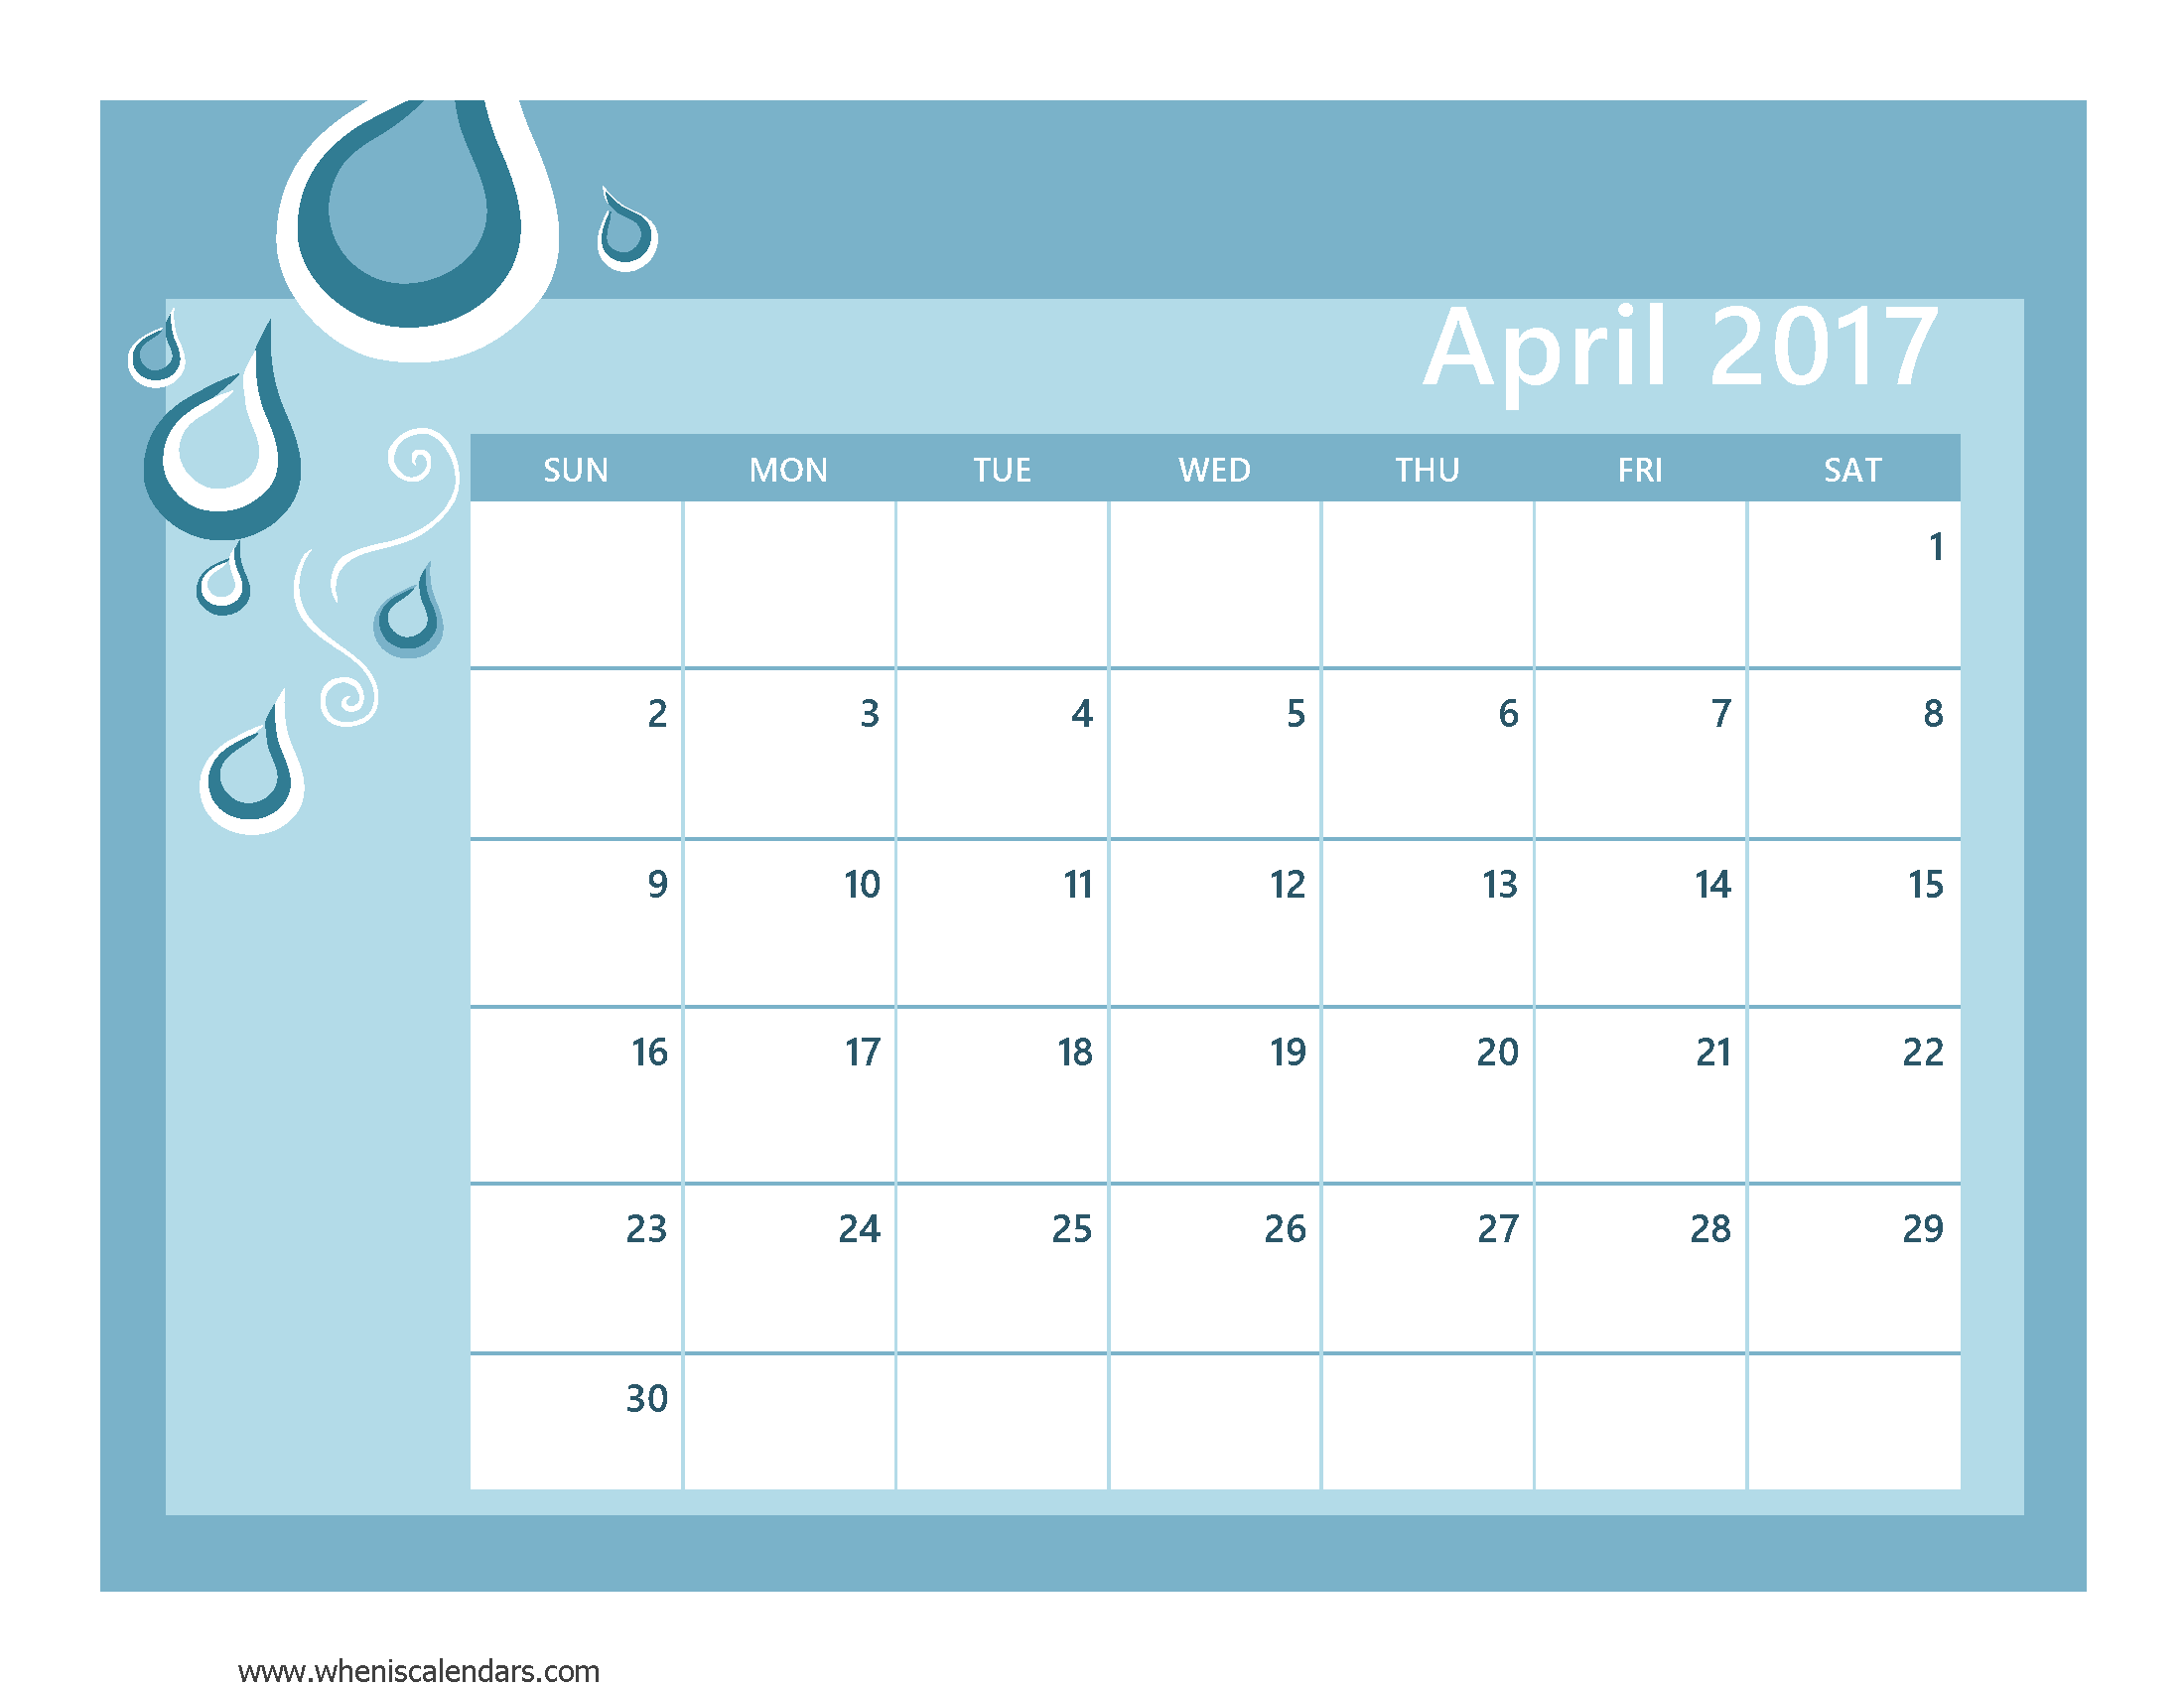 April 2017 Calendar With US Holidays